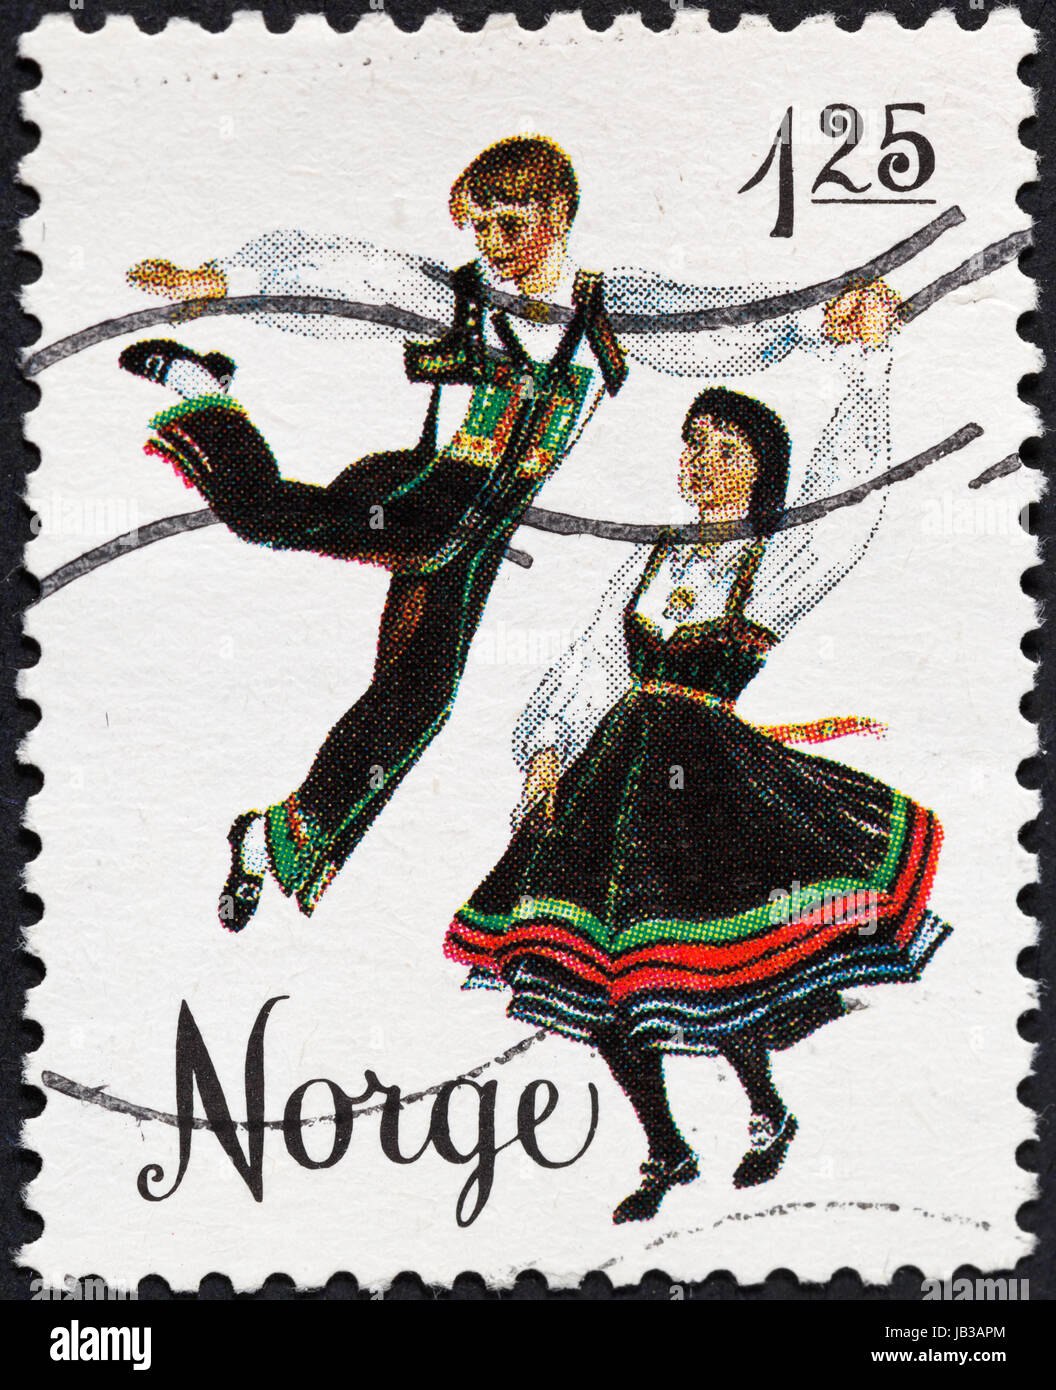 NORWAY - CIRCA 1976: A postage stamp printed in the Norway shows national norwegian folk dance gangar, circa 1976 Stock Photo